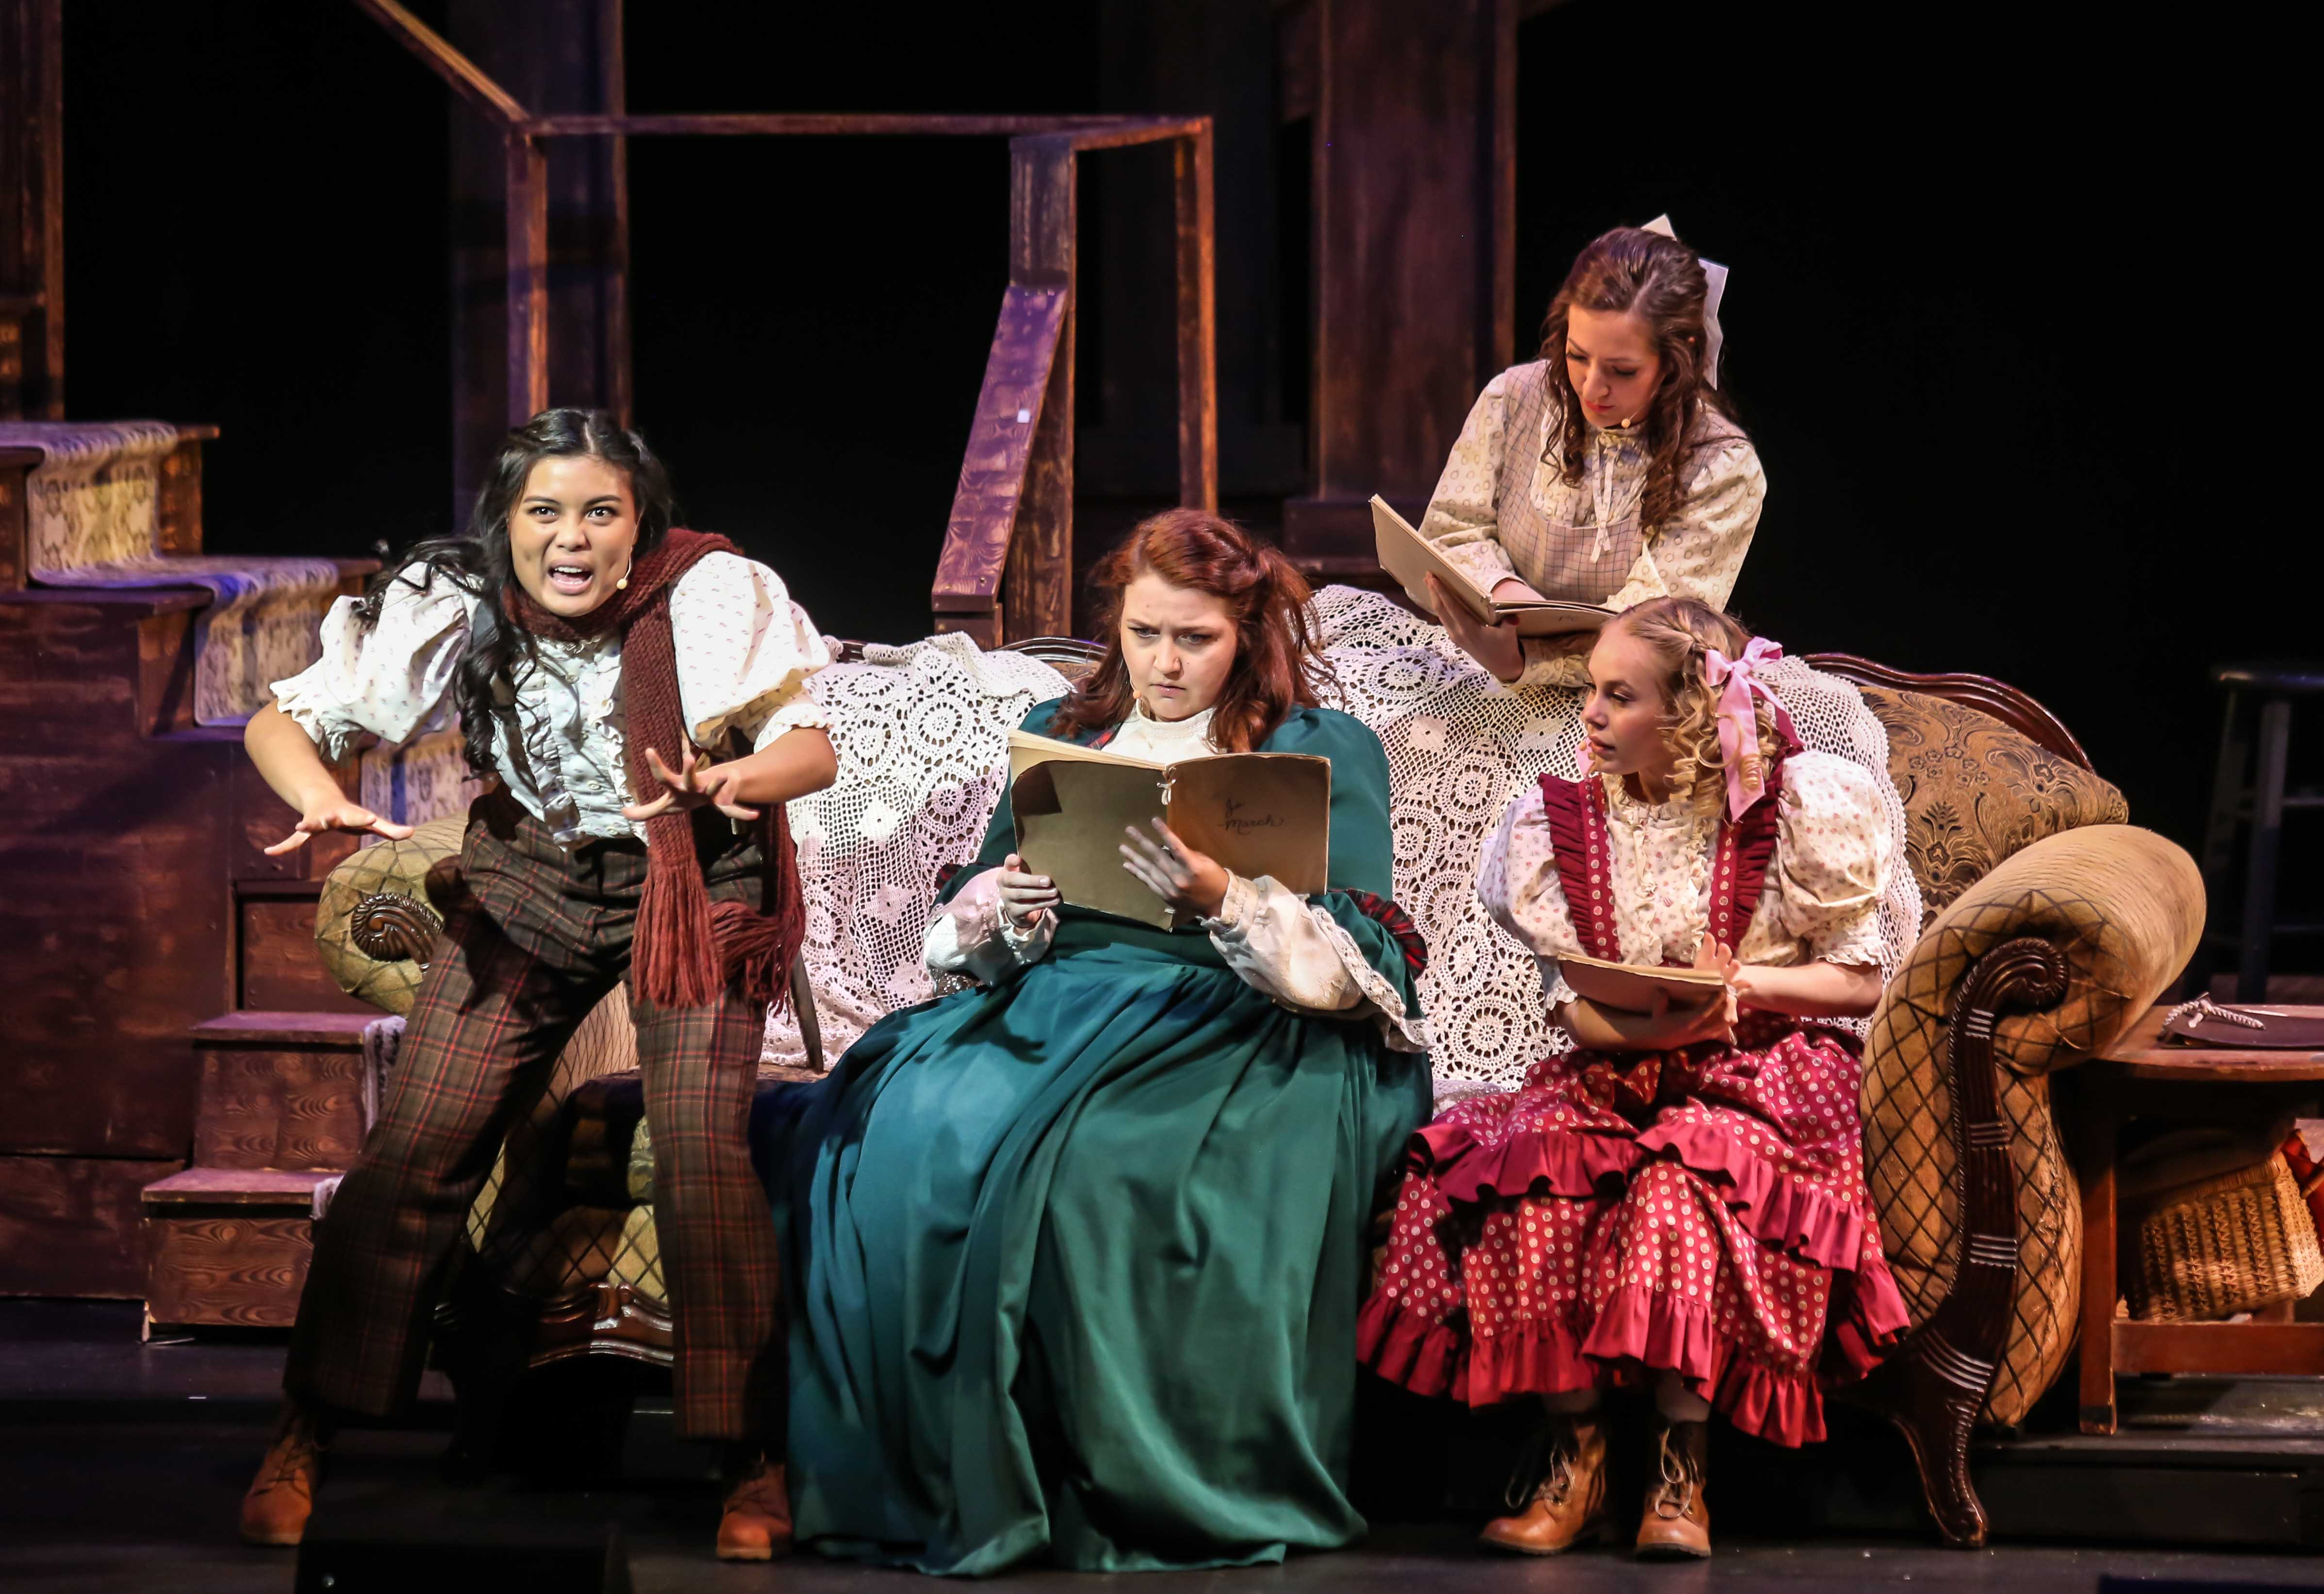 The Company of Little Women